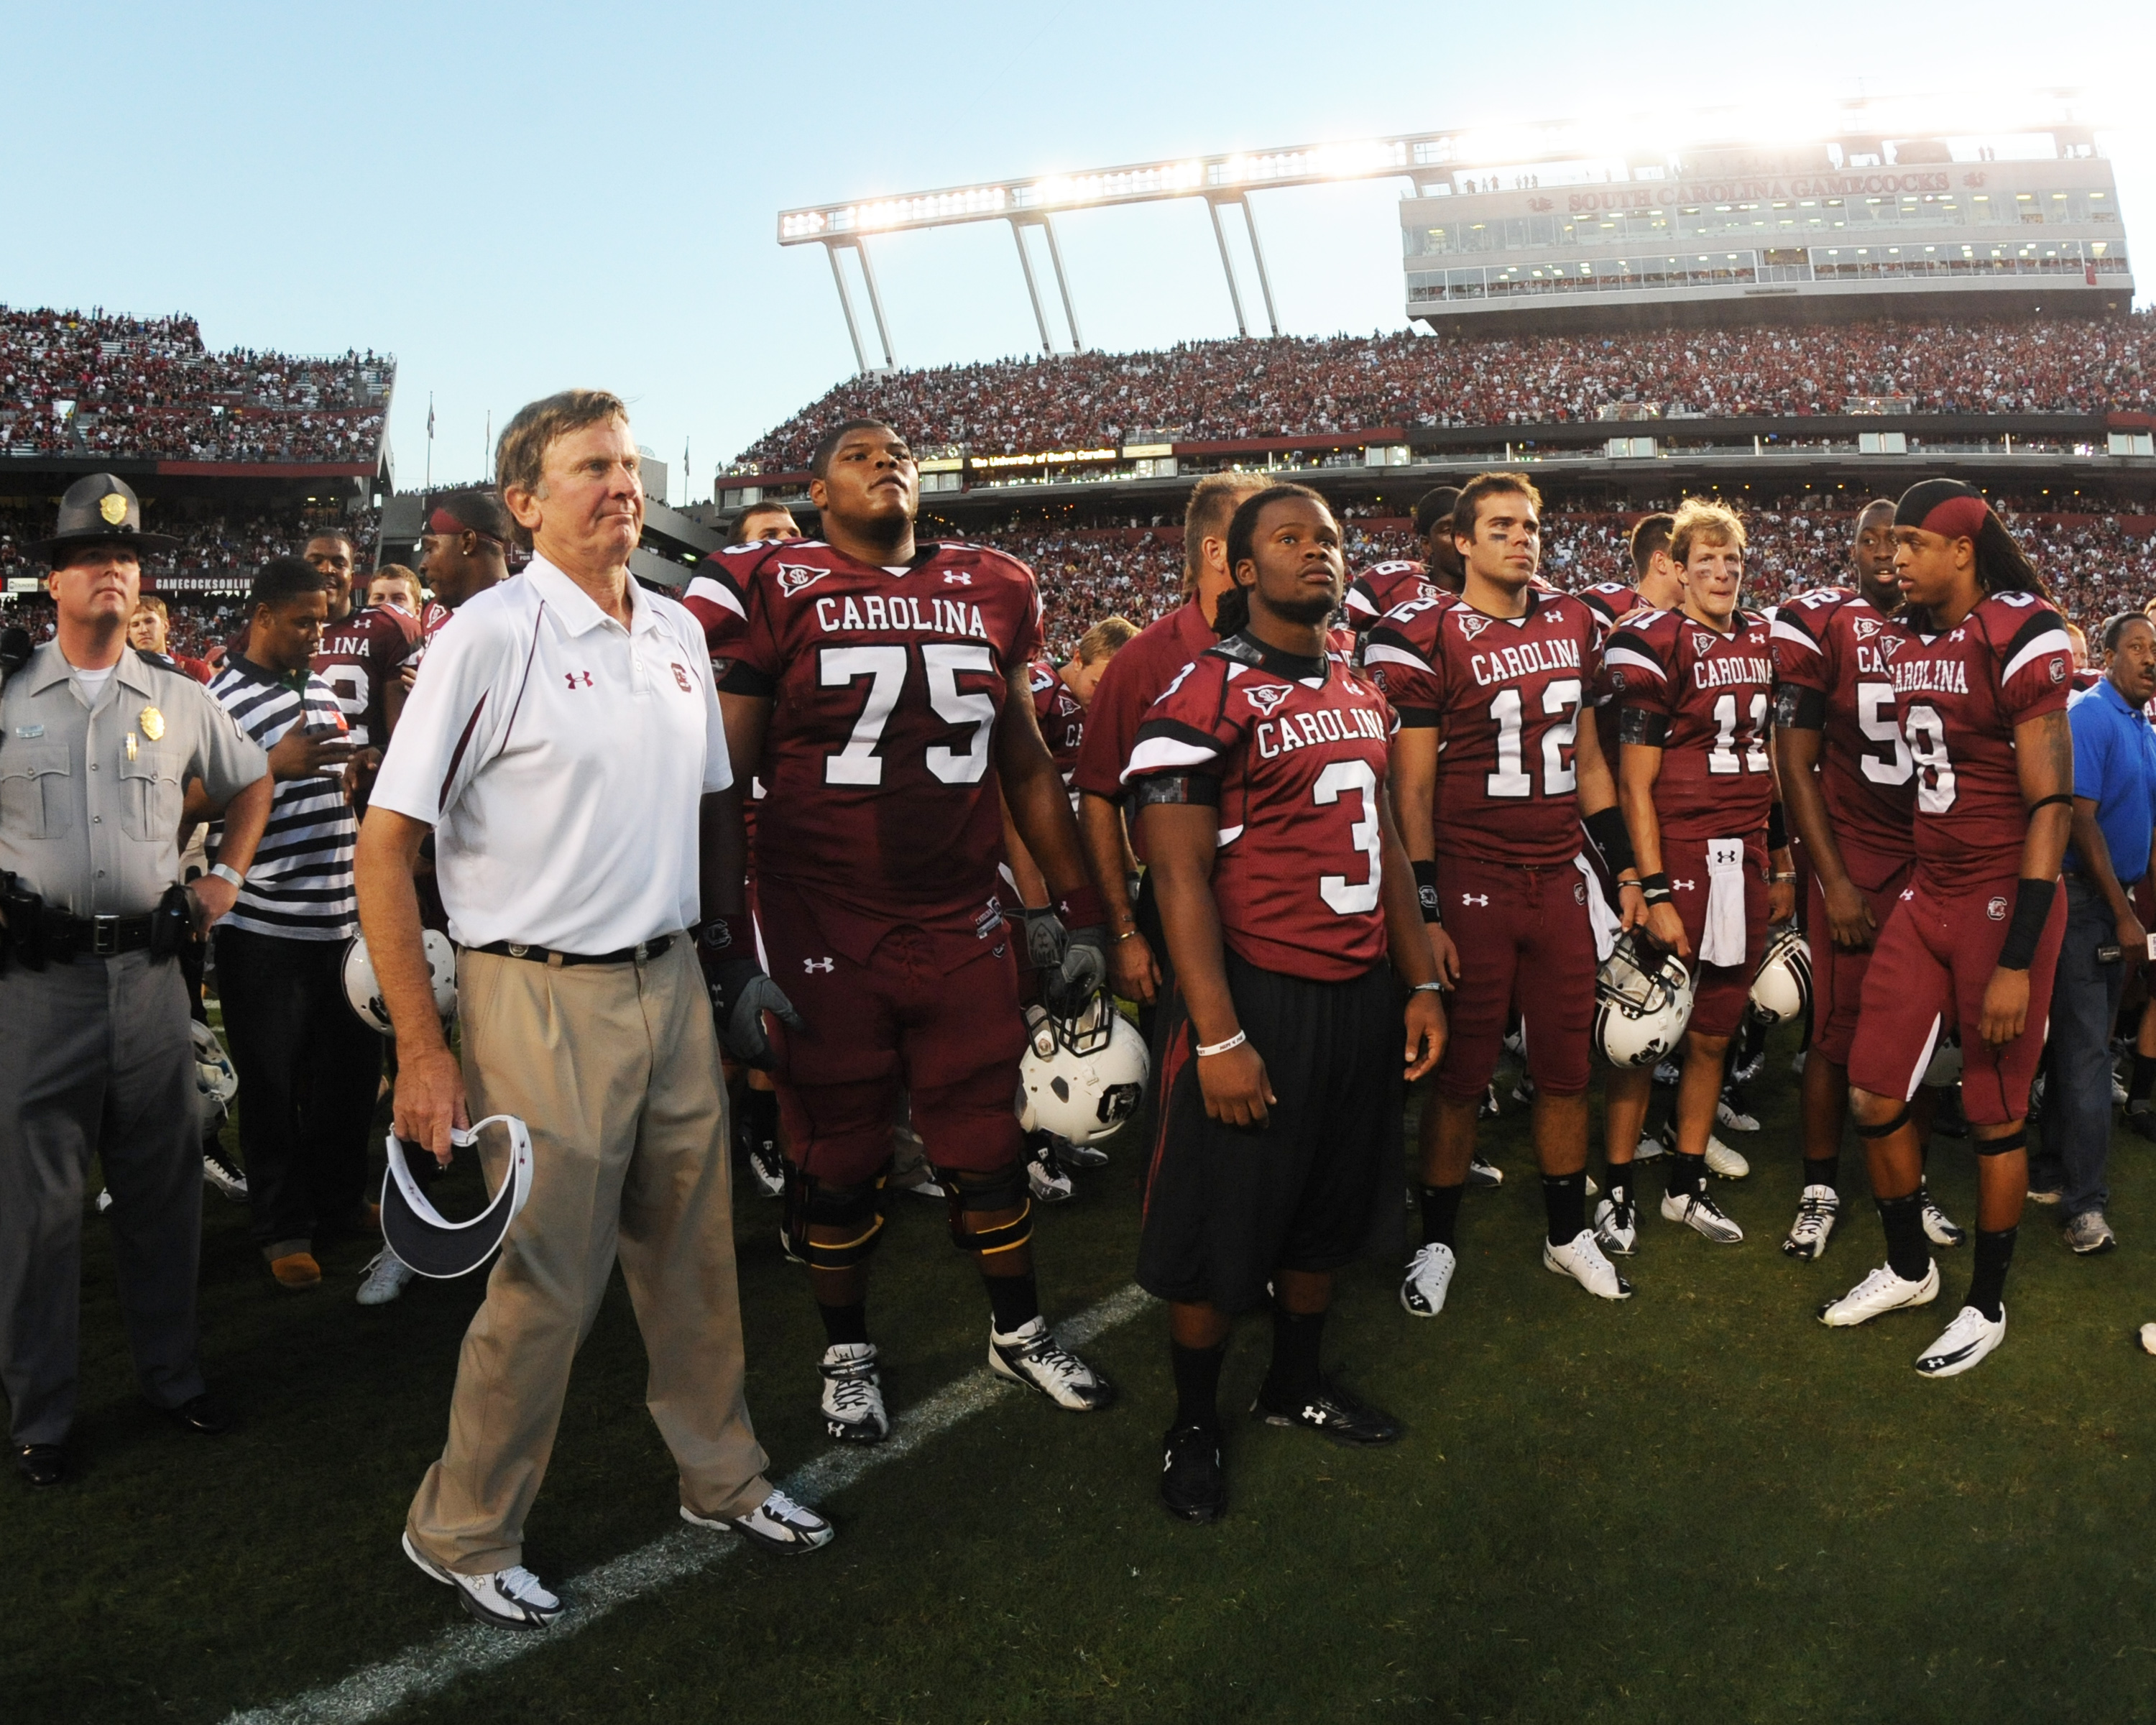 There's that party animal, Steve Spurrier...